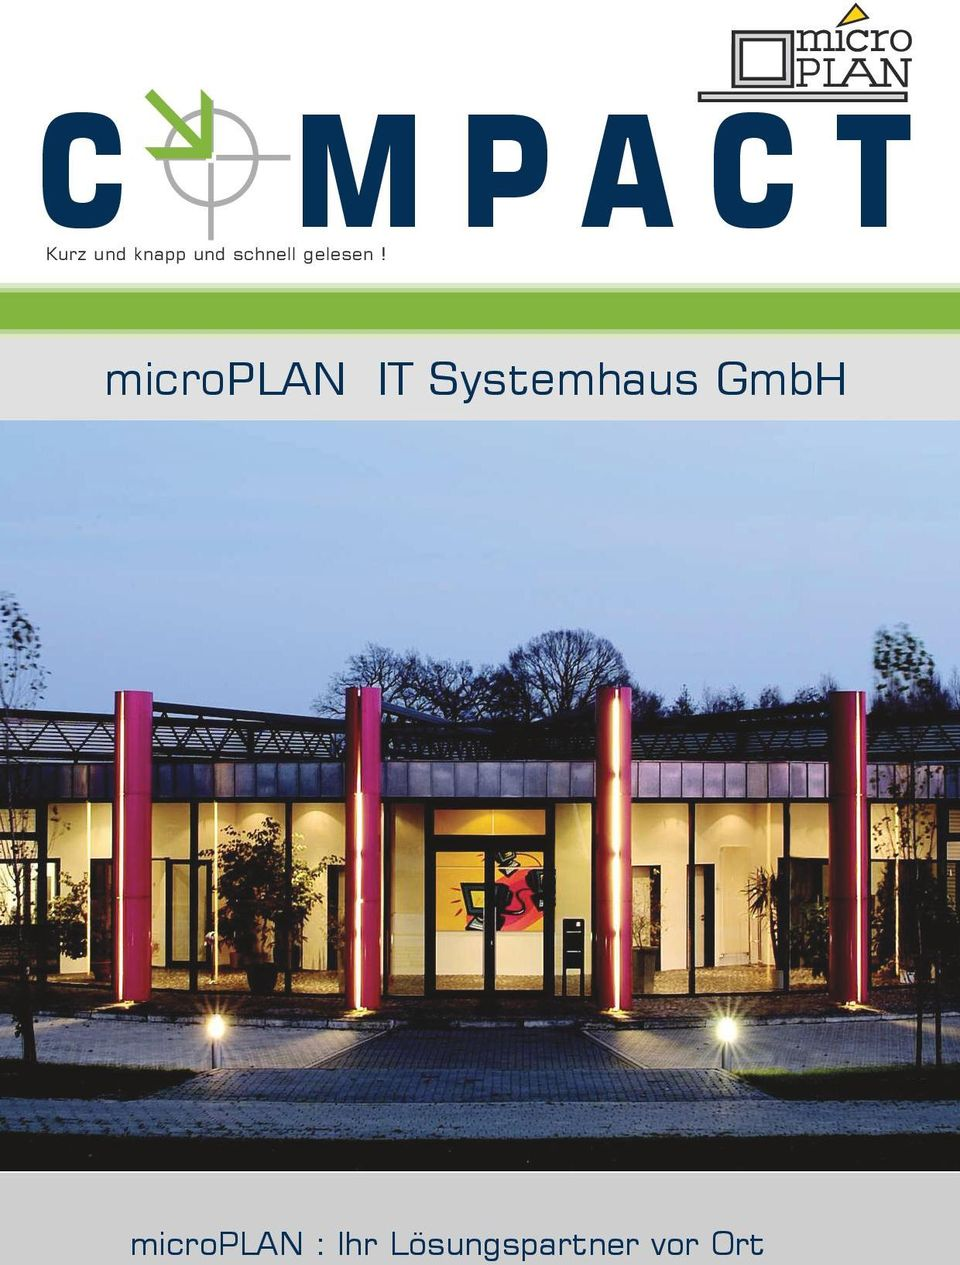 microplan IT Systemhaus